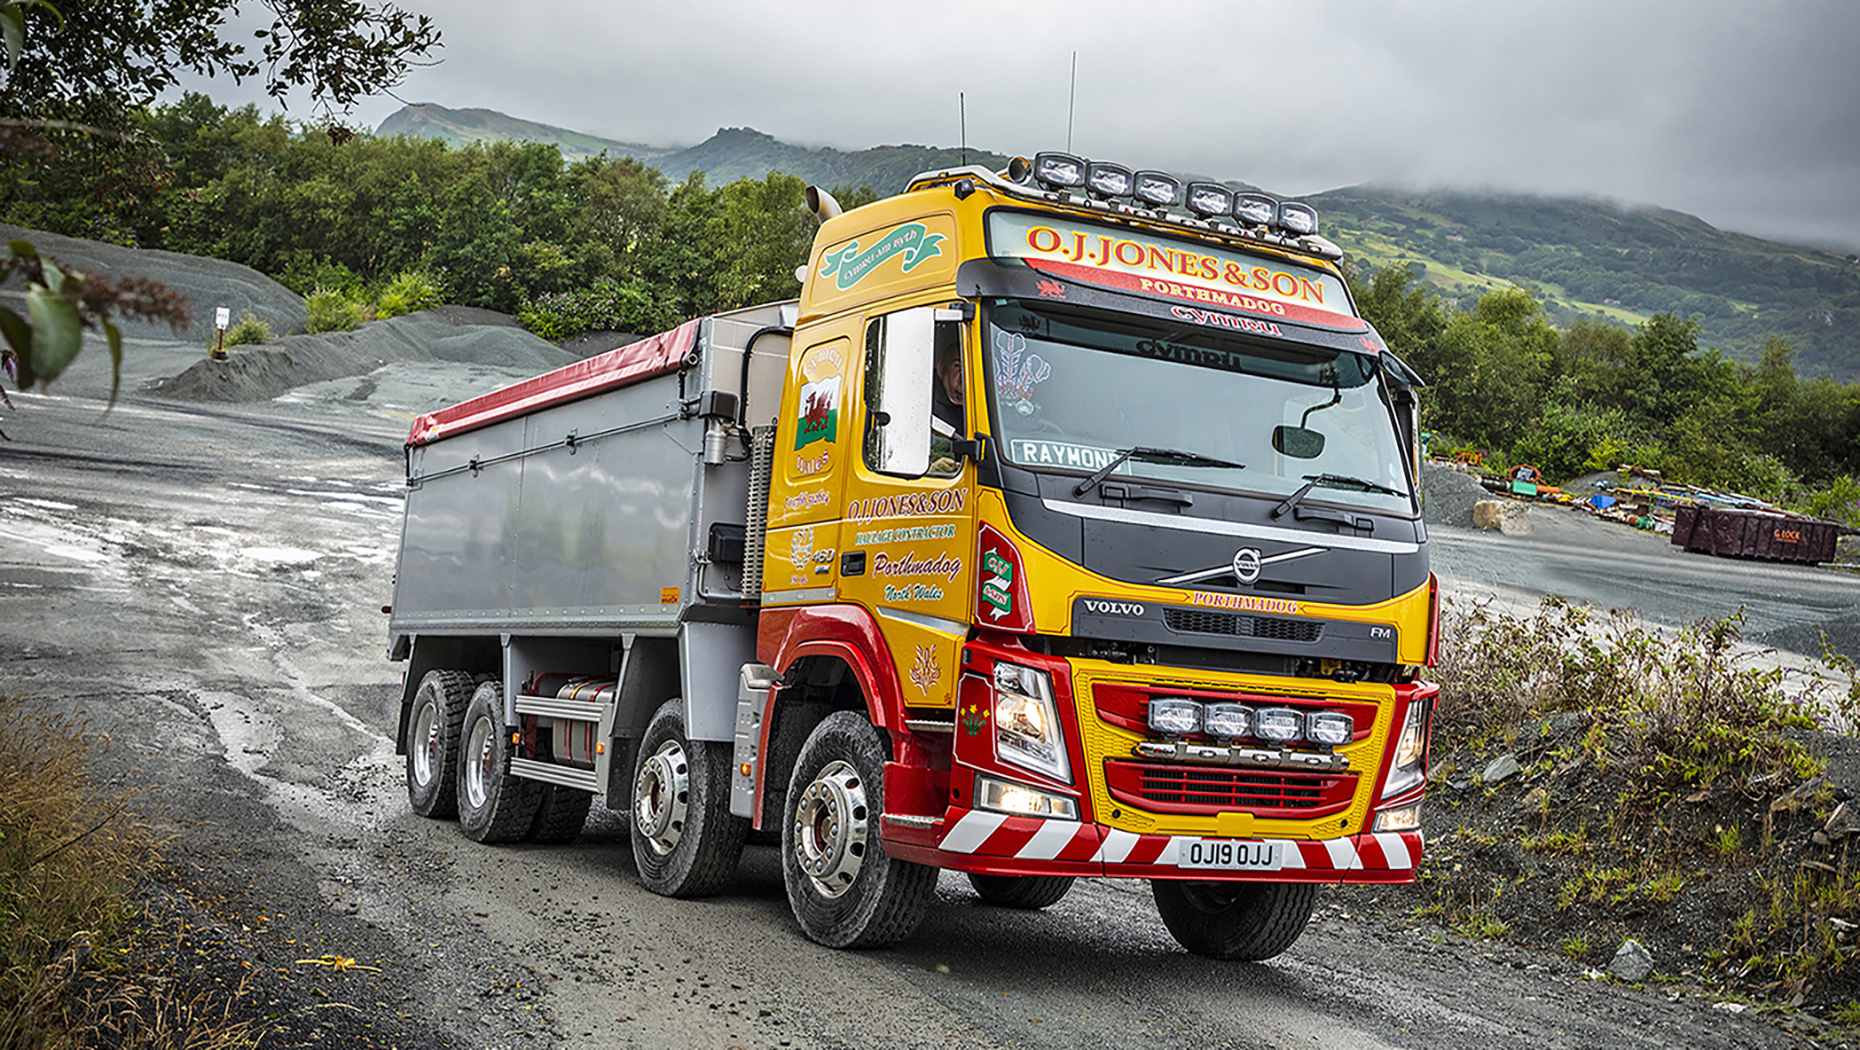 The UK's first I-Shift Dual Clutch equipped Volvo FM rigid proves a top tip at OJ Jones